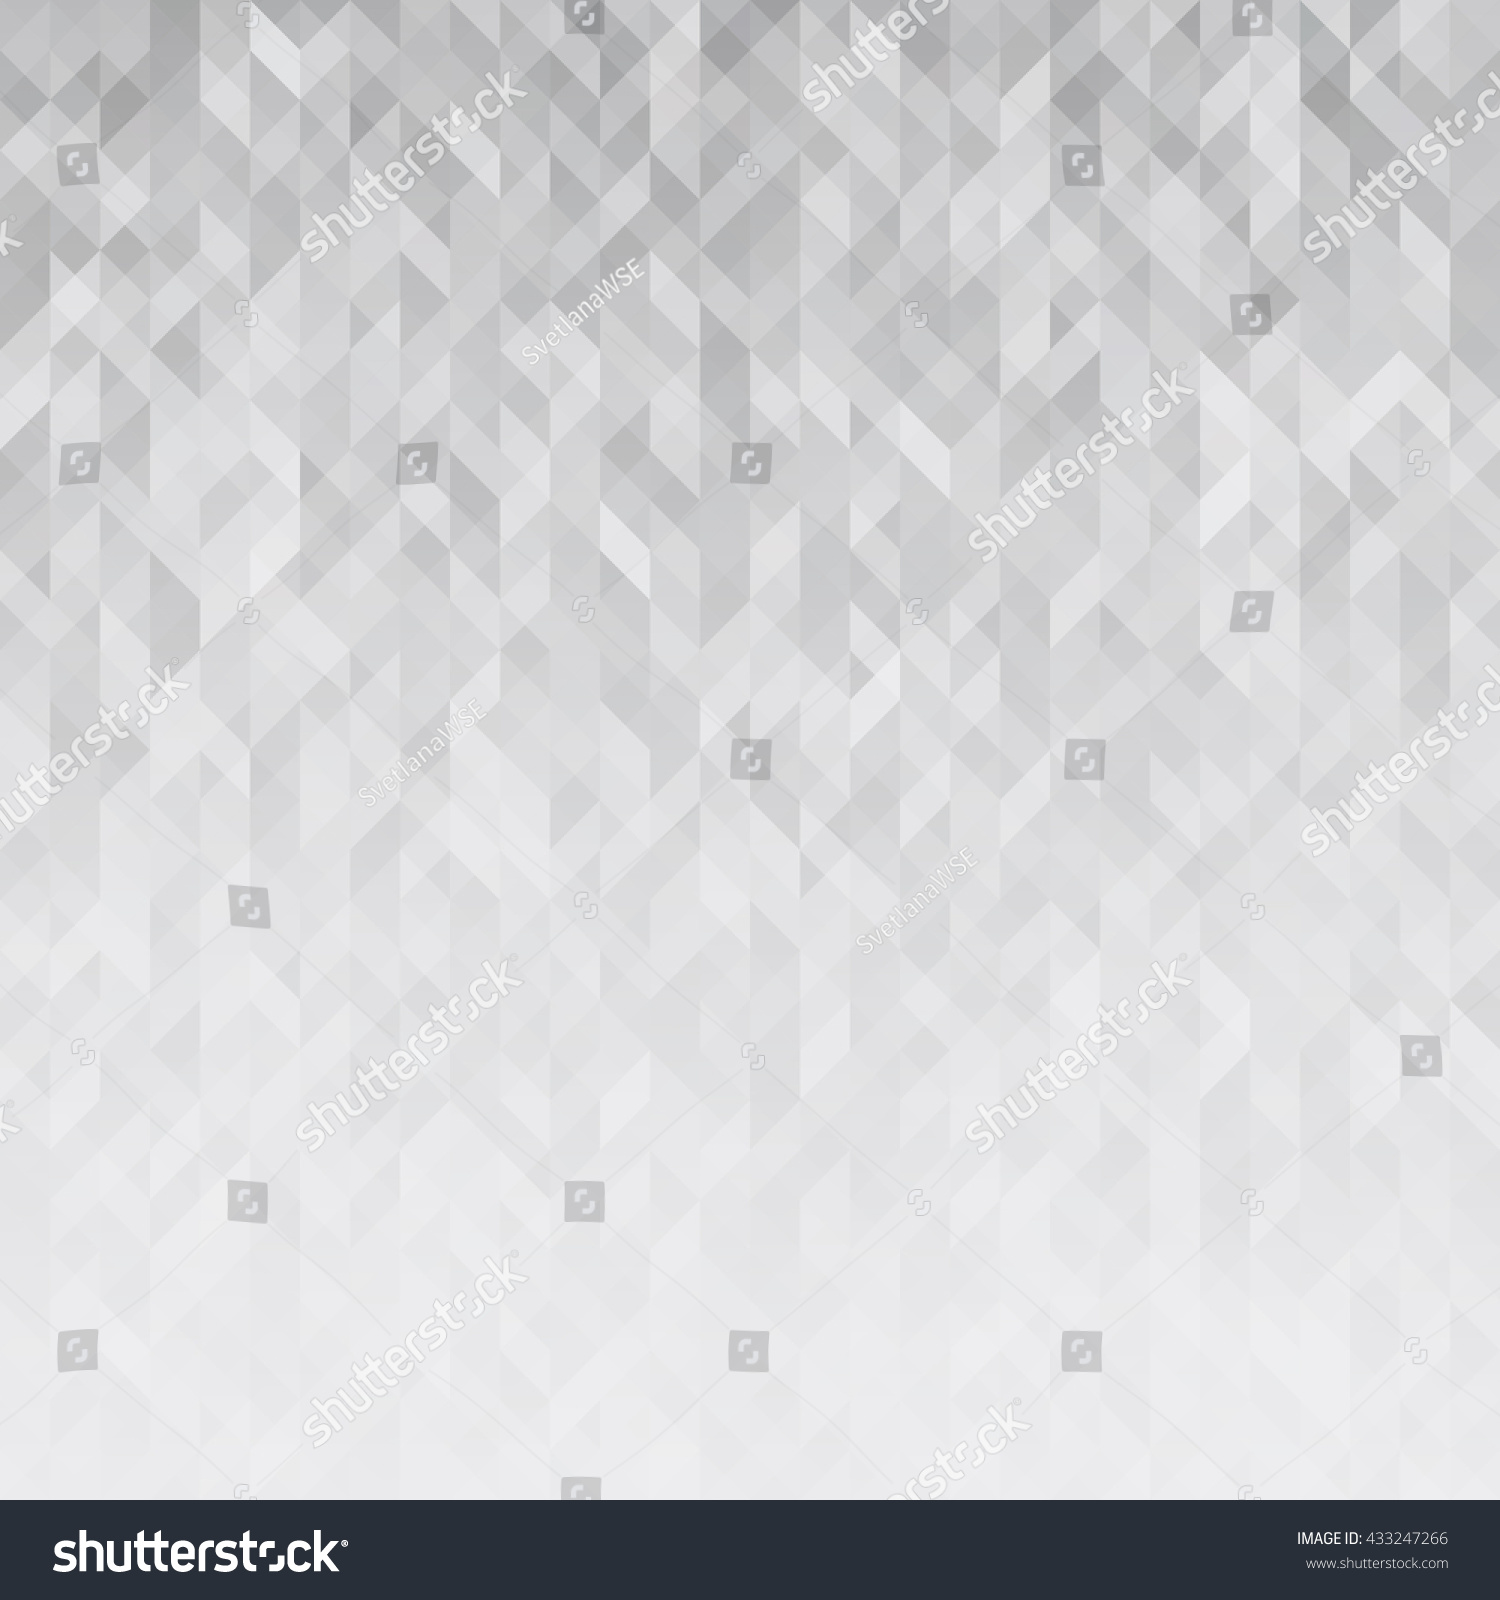 Abstract background in gray tones. Vector illustration. Winter pattern.